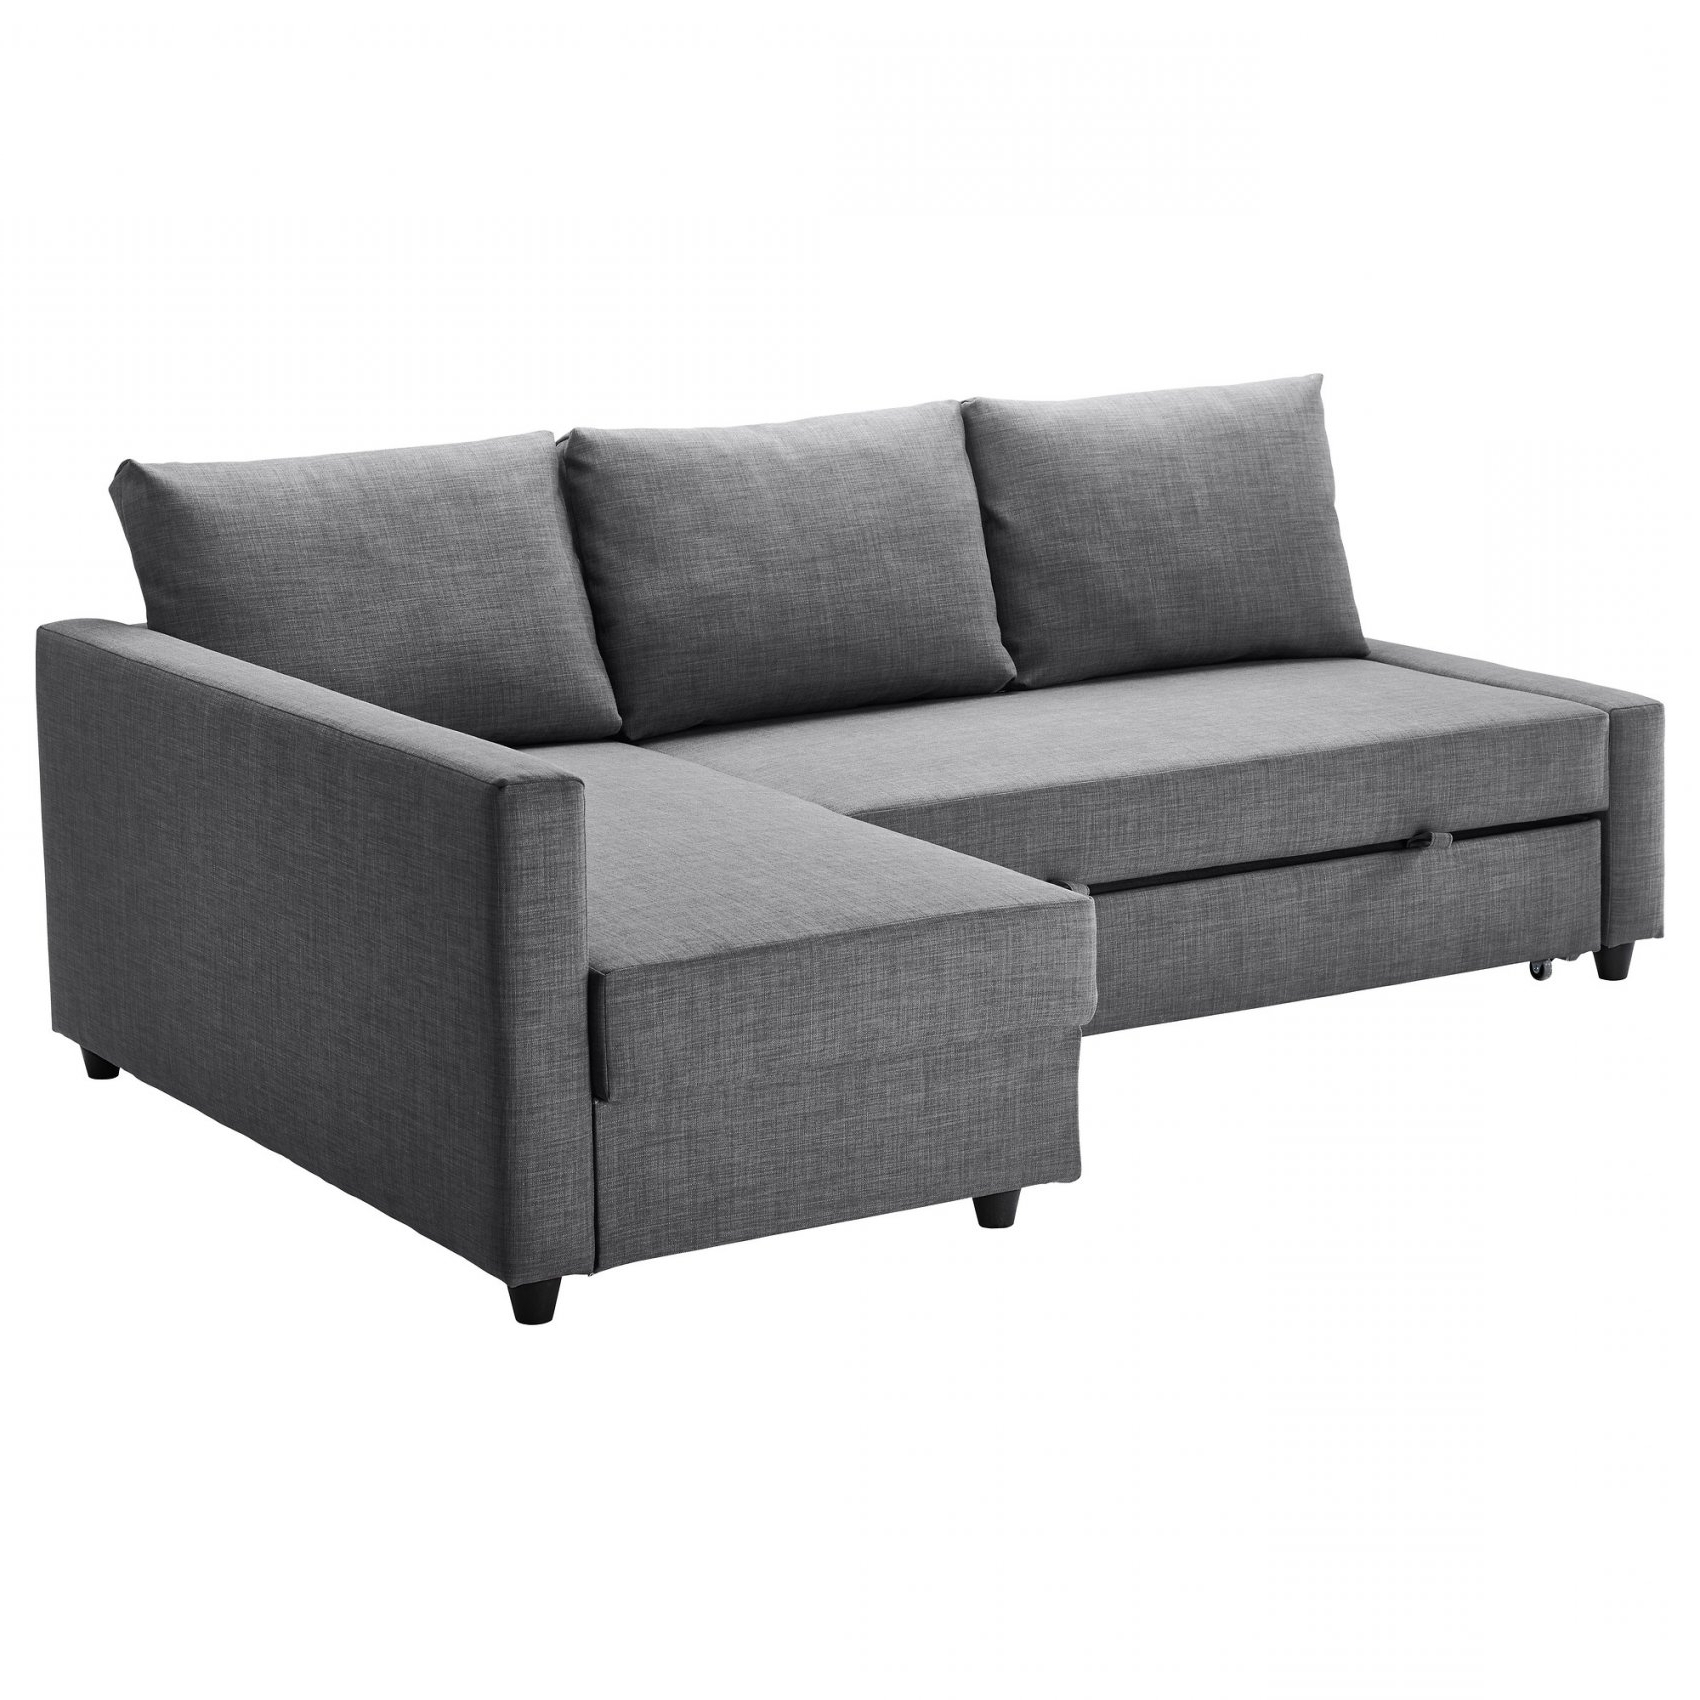 Chaise Lounge Sofa Sleeper For Preferred Chaise Lounge Sleepers (View 8 of 15)